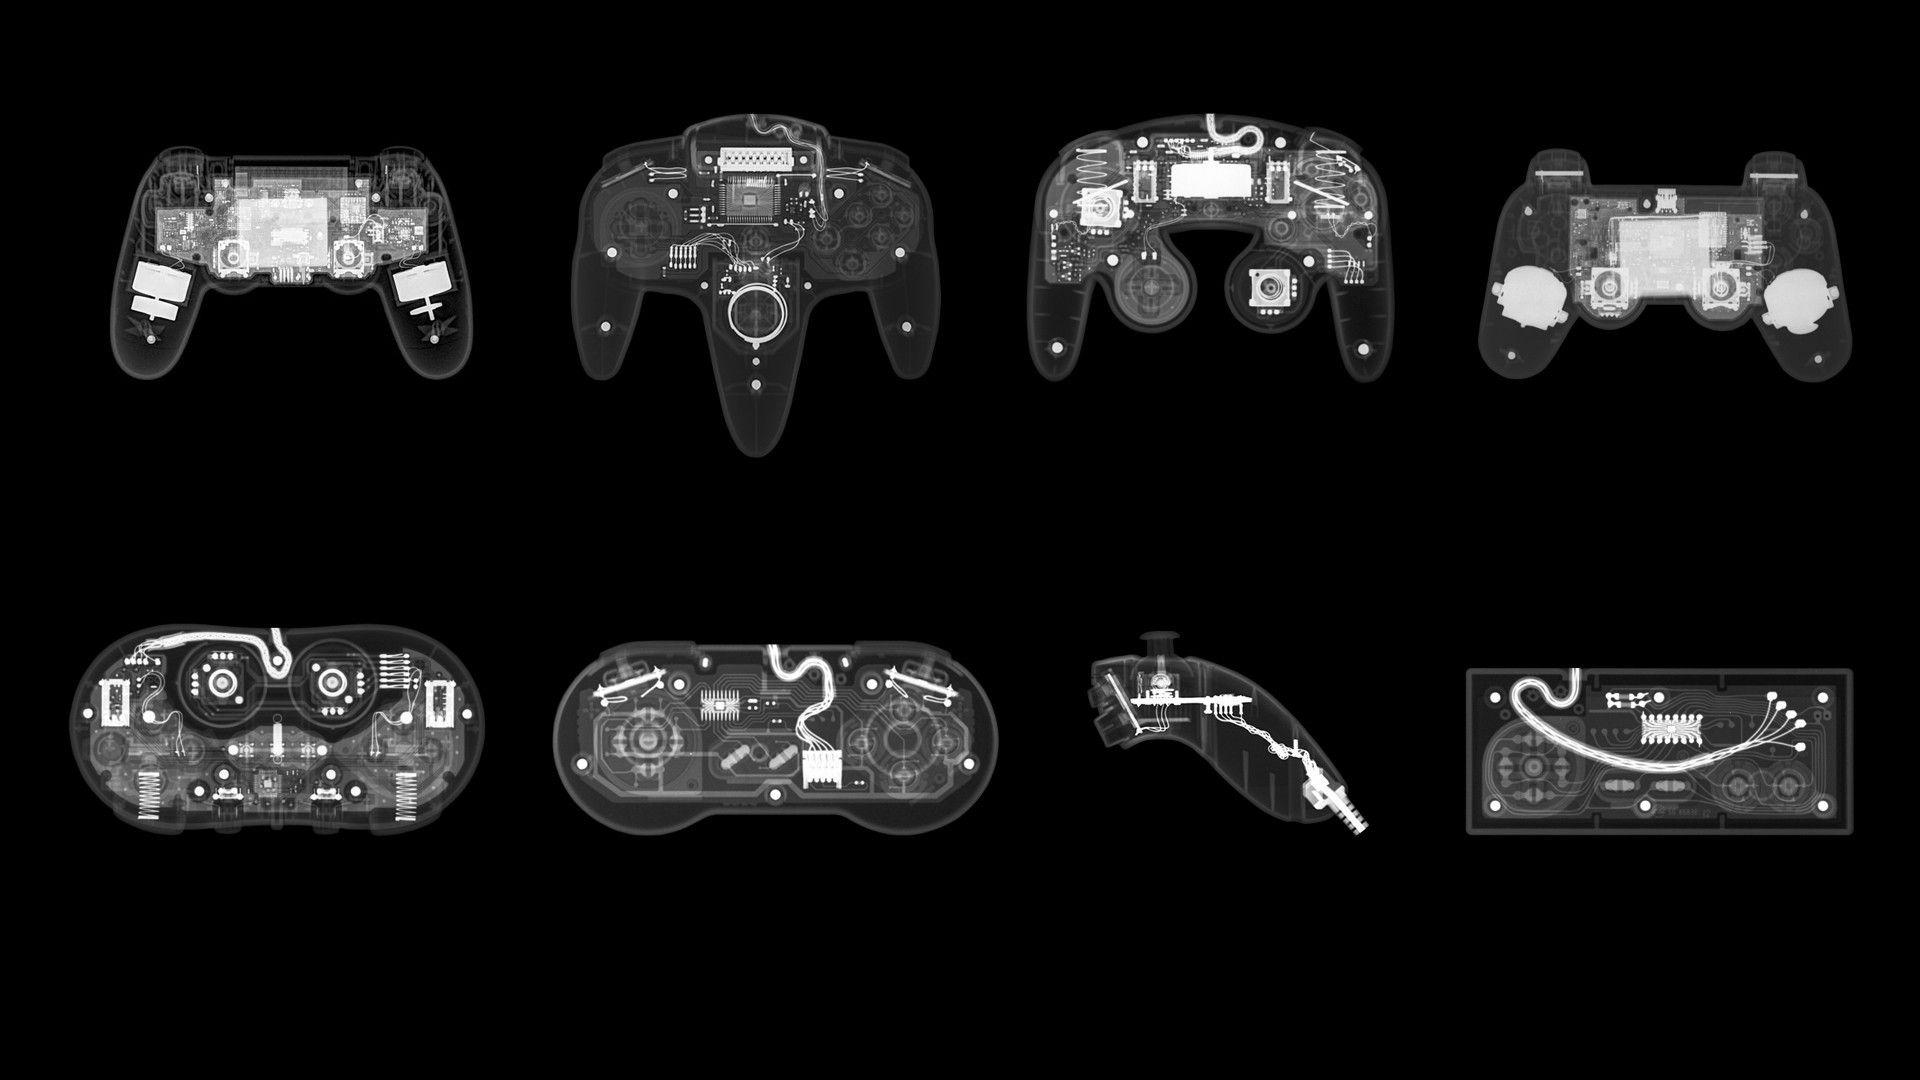 1920x1080 Video Game Controller Wallpapers Image 6 HD Wallpapers